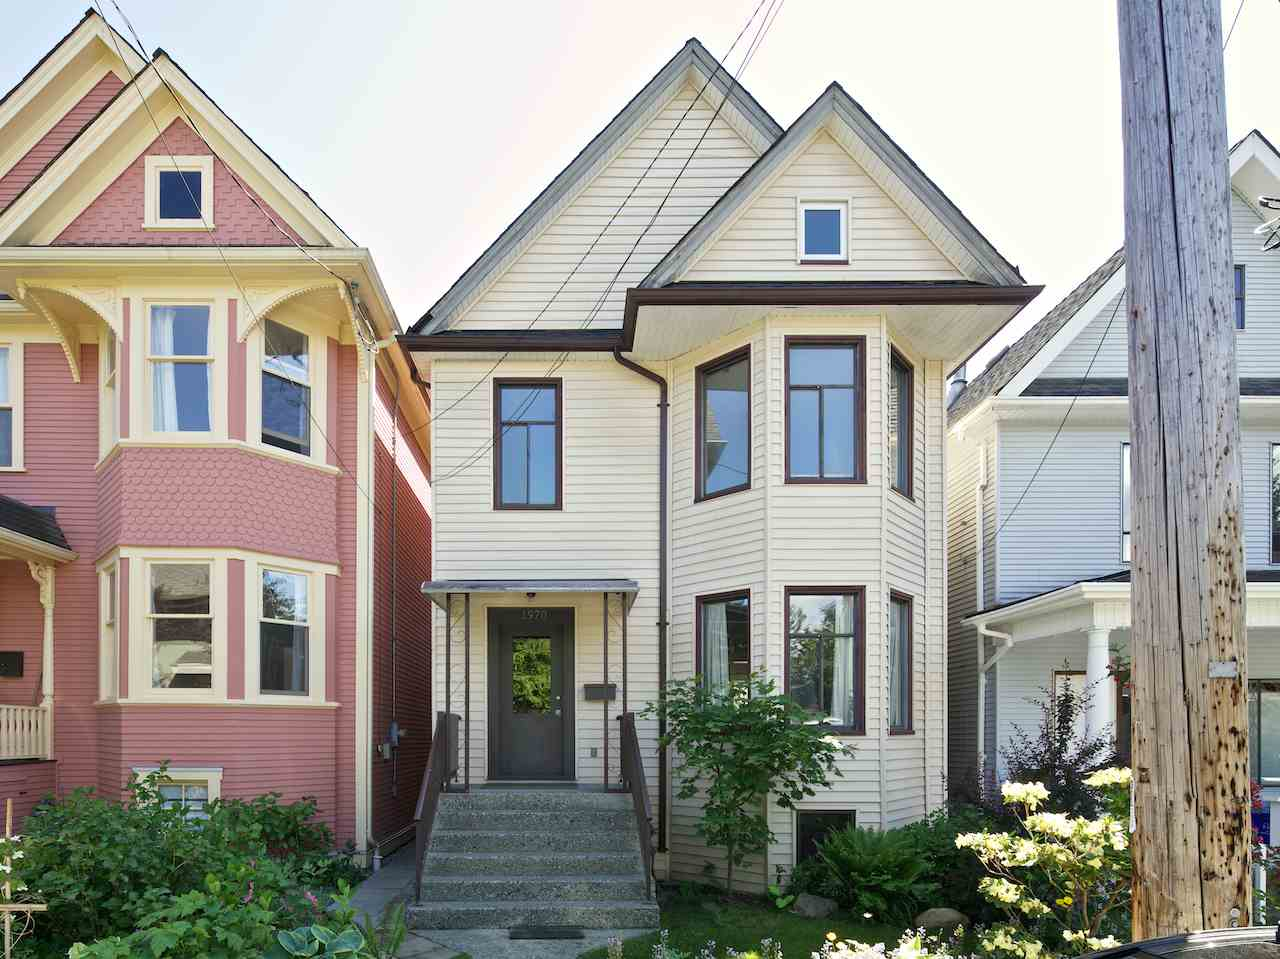 Main Photo: 1970 WILLIAM Street in Vancouver: Grandview VE House for sale (Vancouver East)  : MLS(r) # R2066668